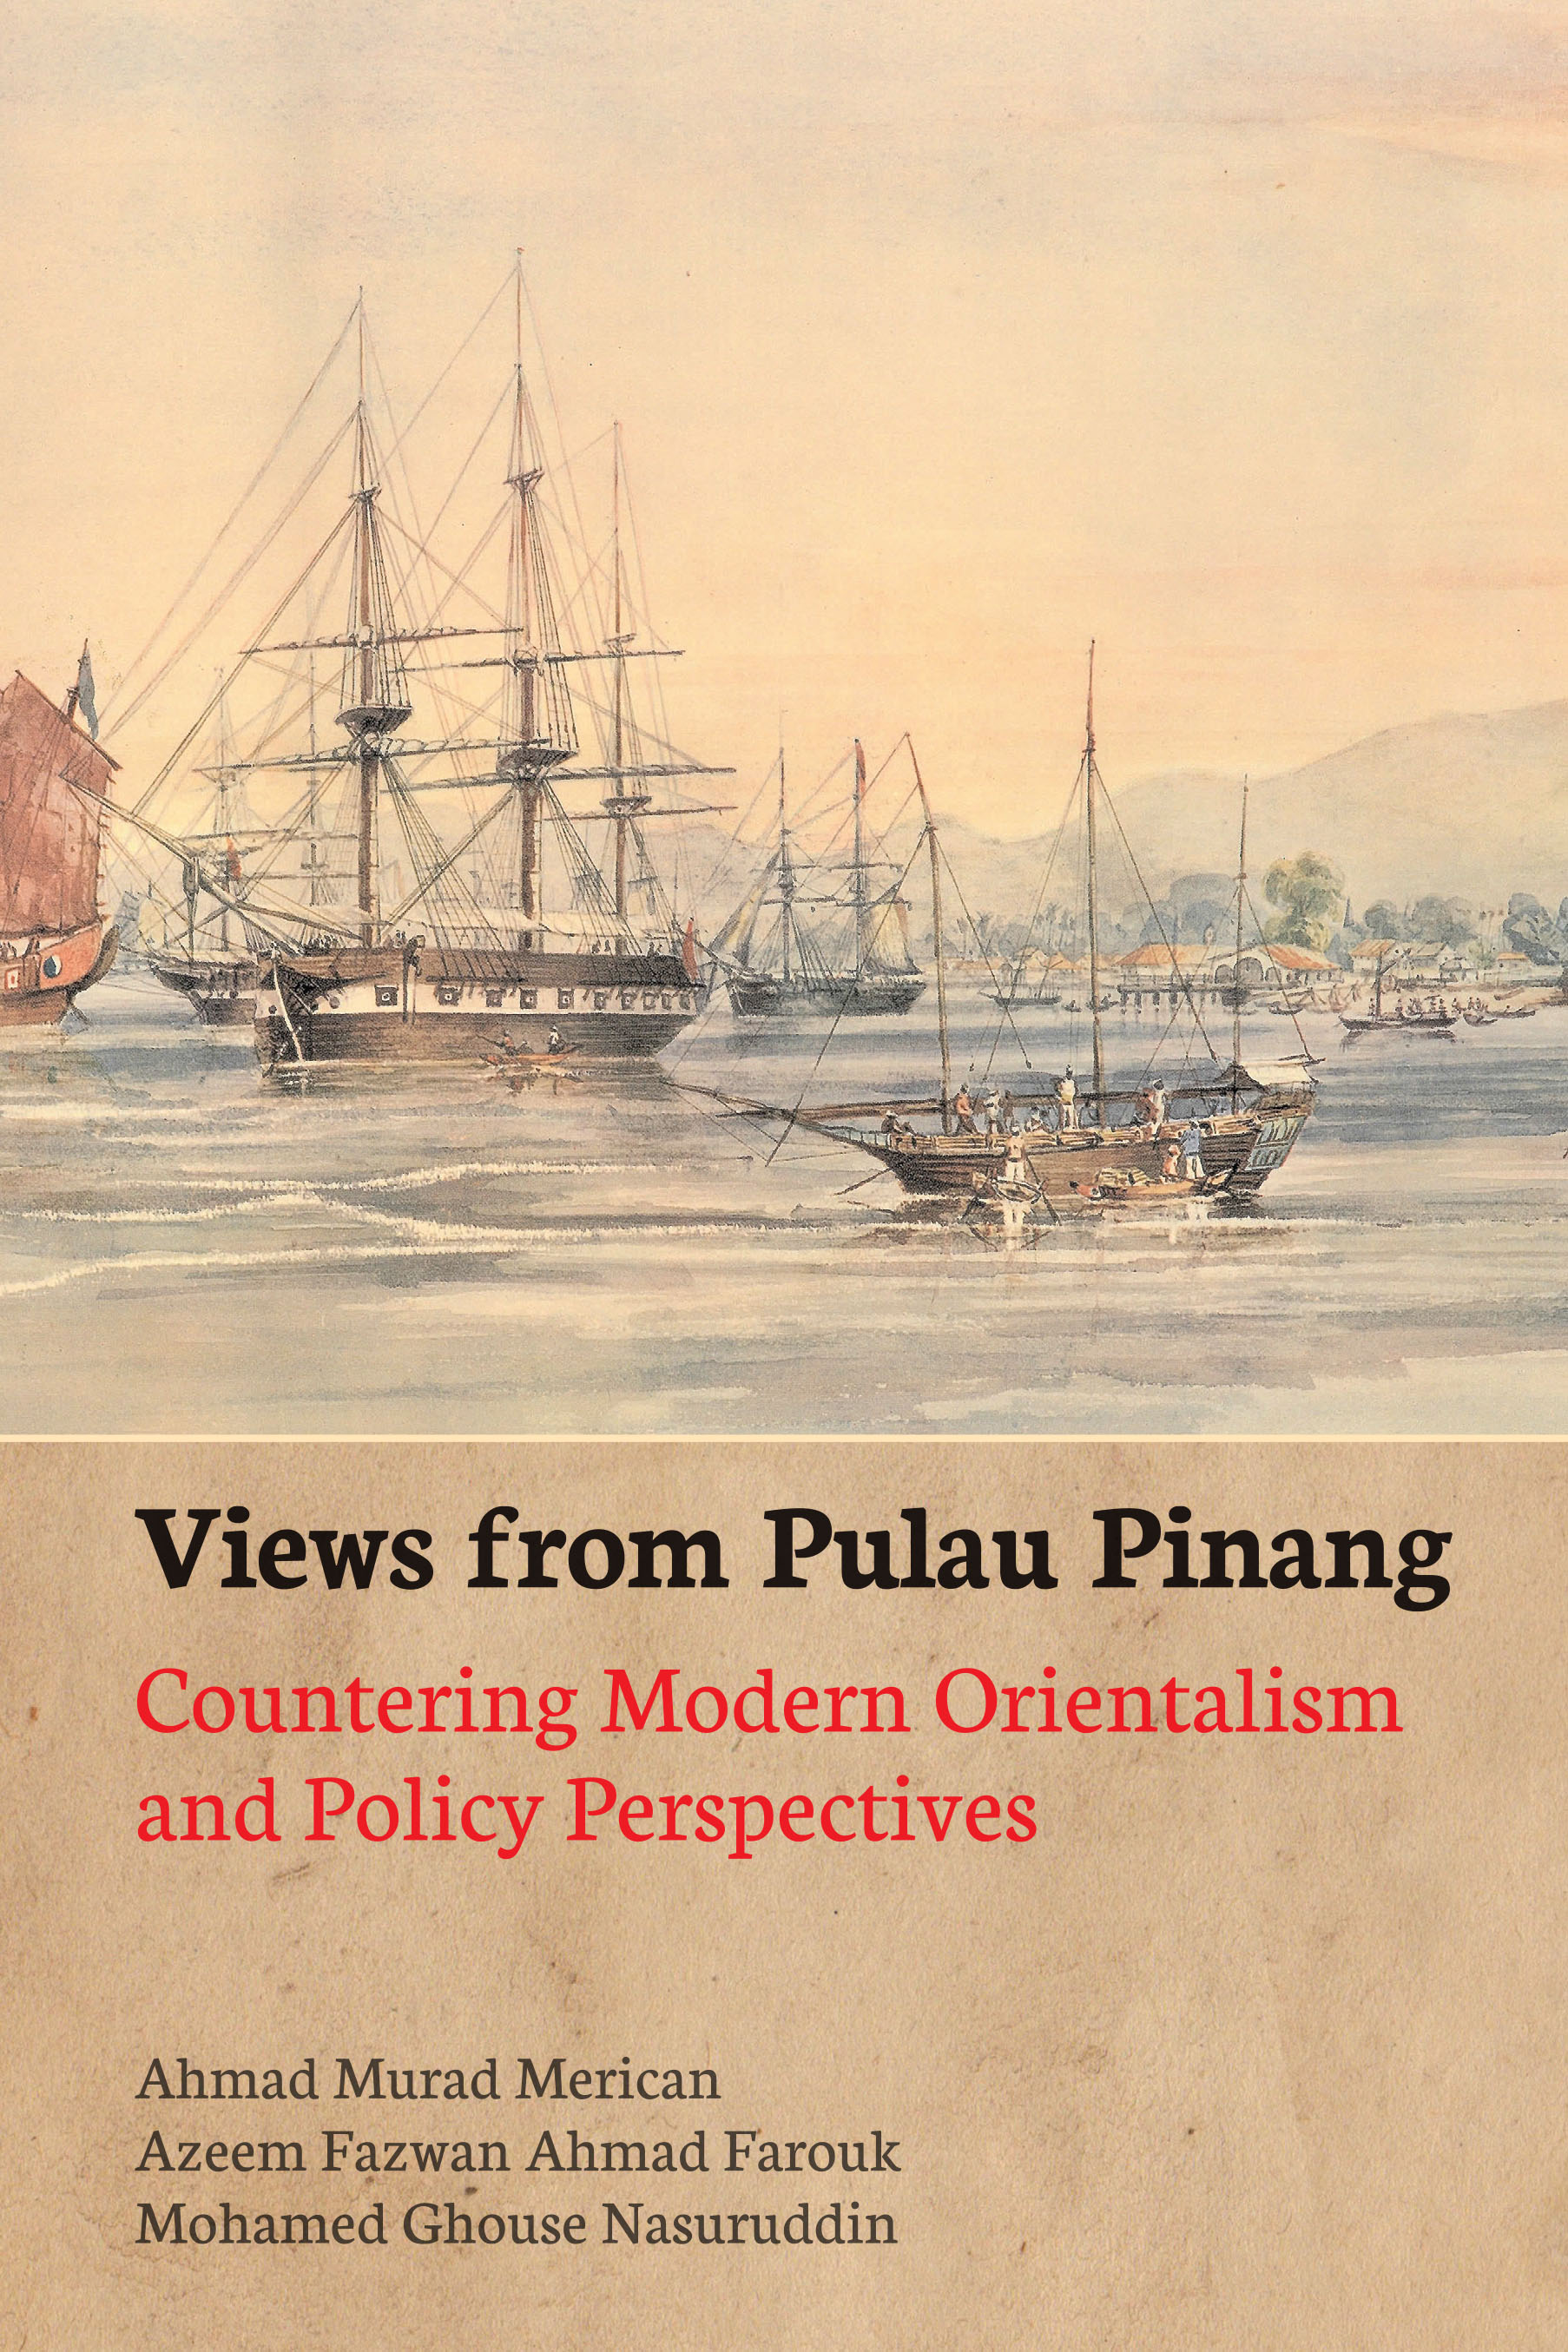 Views from Pulau Pinang - Countering Modern Orientalism and Policy Perspectives